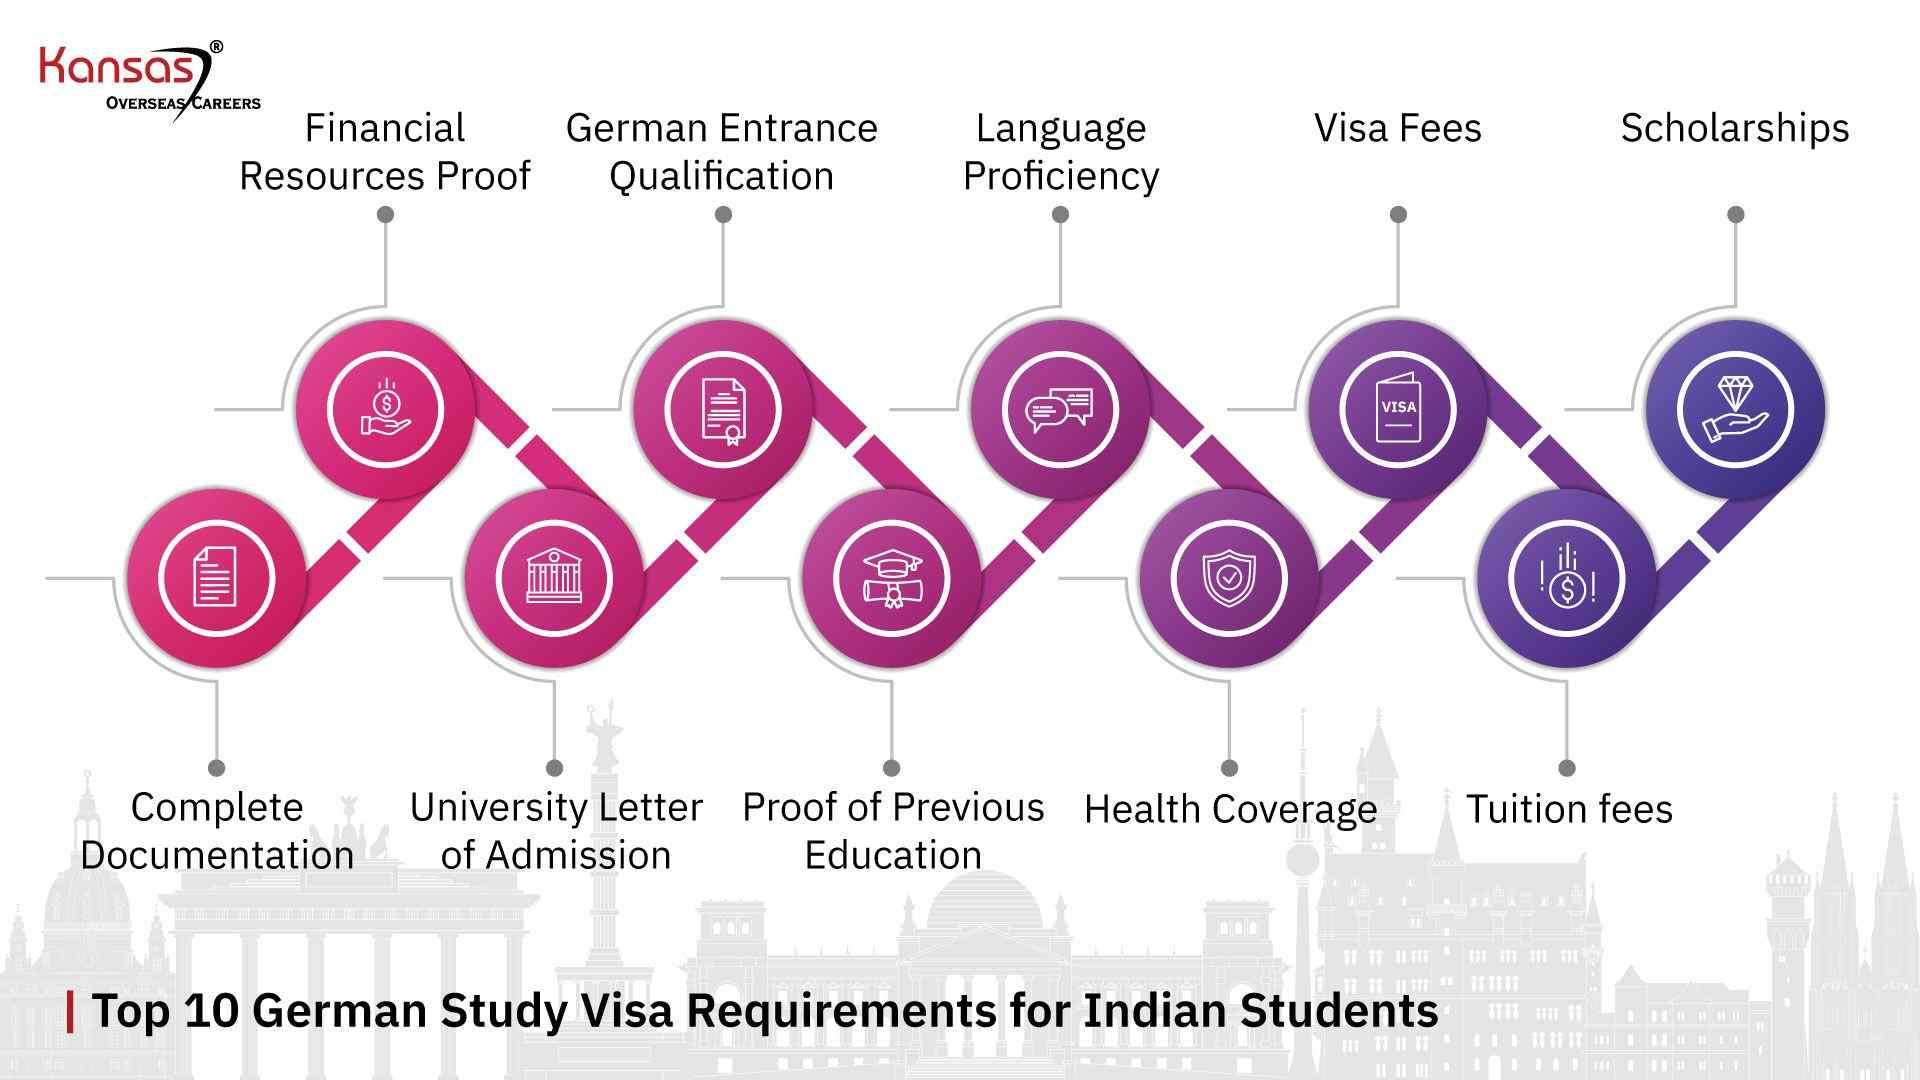 Top-10-German-Study-Visa-Requirements-for-Indian-Students-in-2021